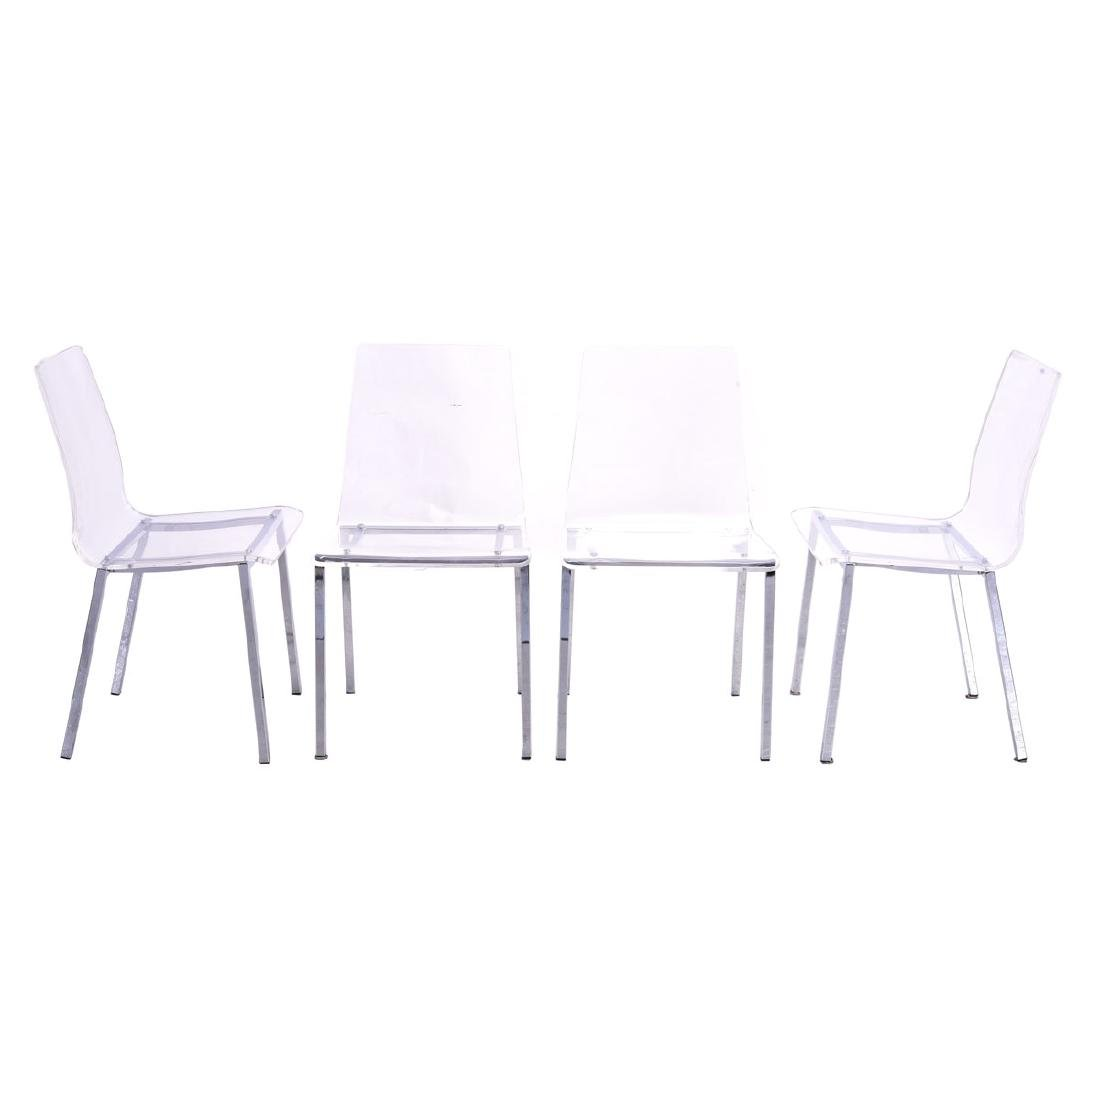 Four Modernist Style Clear Plastic Side Chairs, with